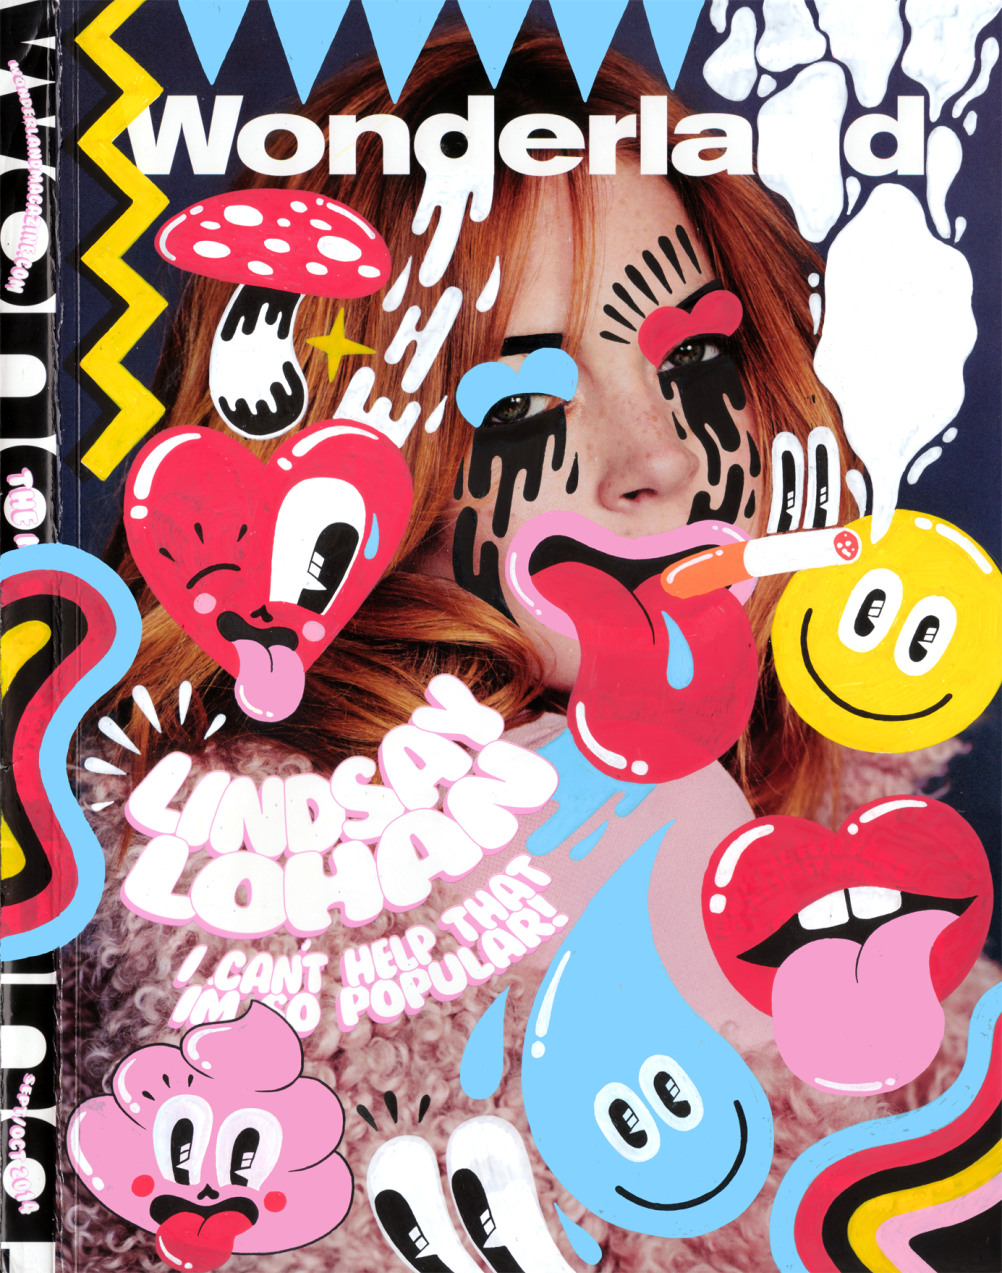 Wonderland magazine cover